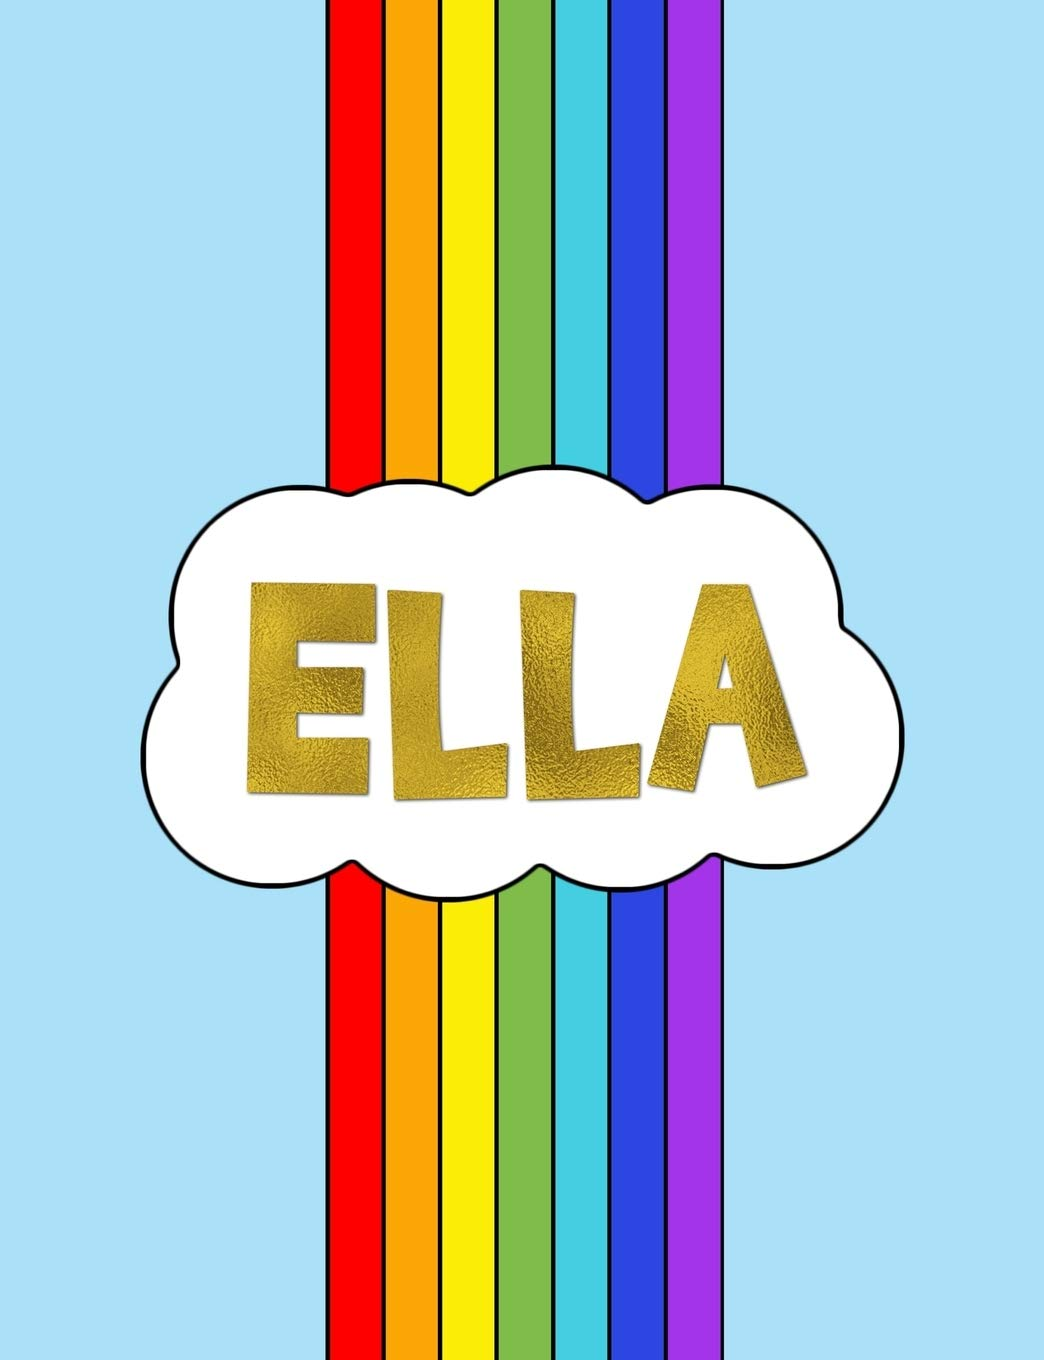 Ella Rainbow Cloud Personalized Name Composition Notebook Cute Blue Red Purple Wide Ruled Blank Lined Exercise Book Journal For Students 100 Pages 50 Sheets